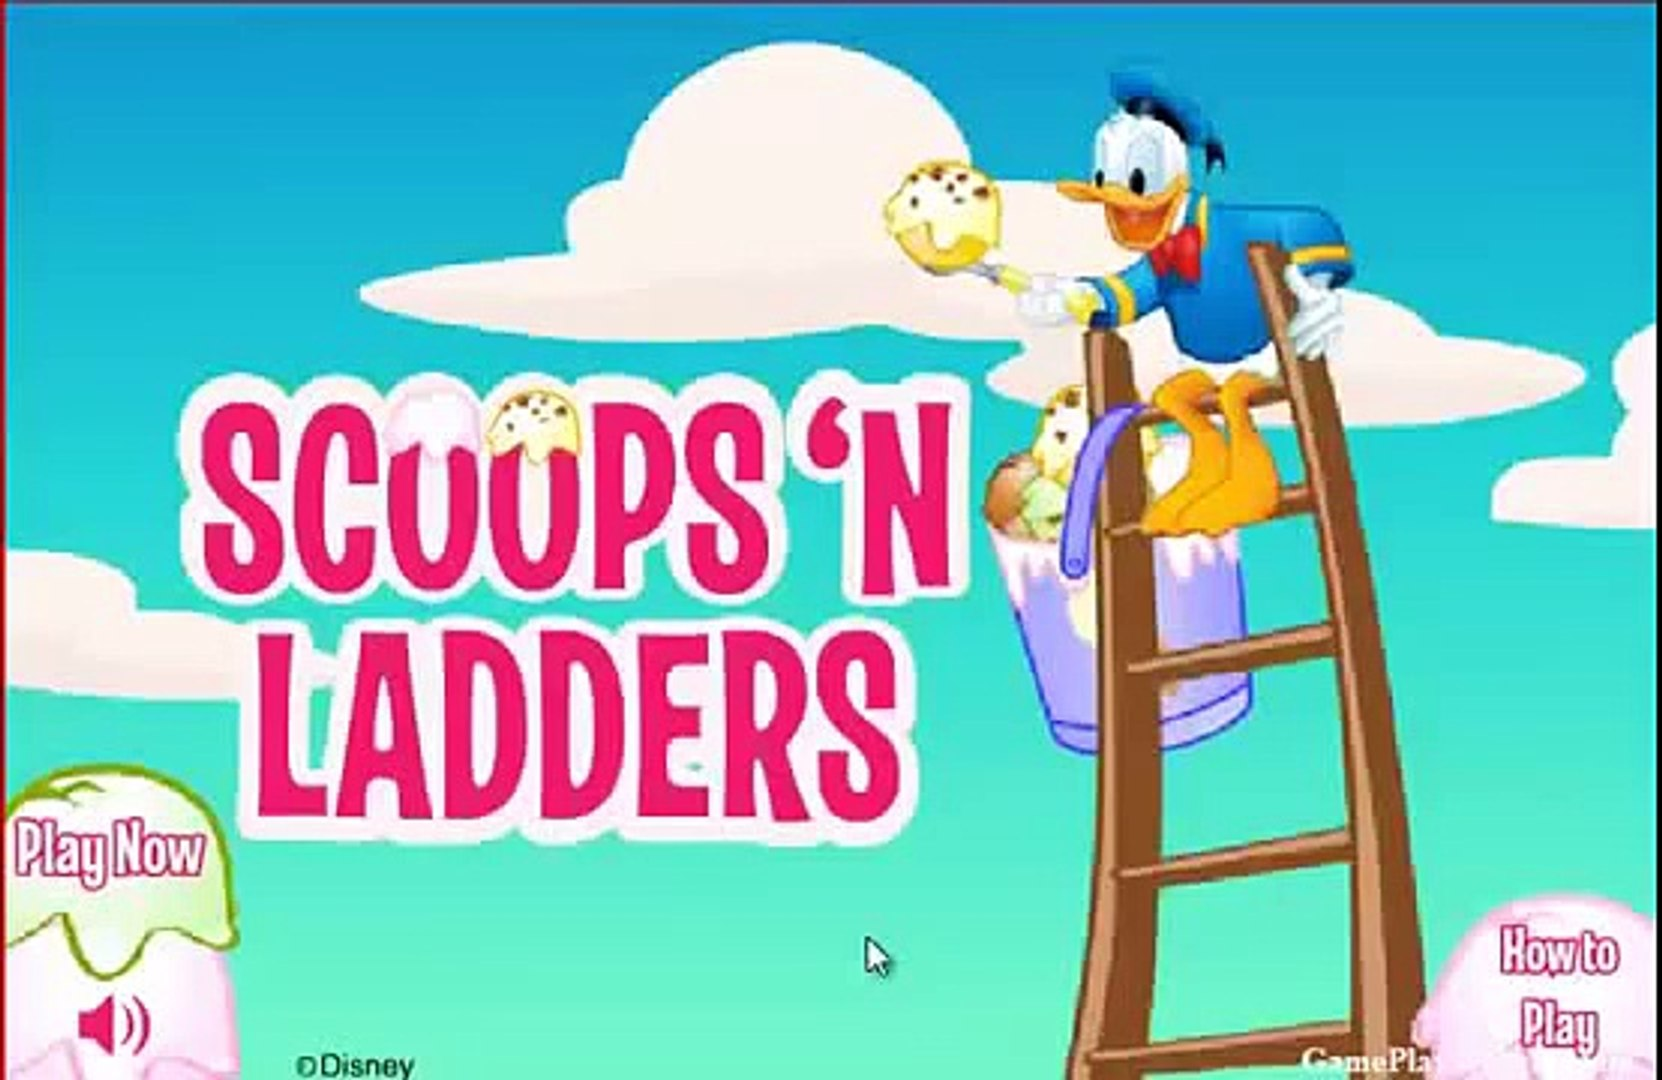 Disney Donald duck ice cream scoops gameplay A New disney video game! jeux video en ligne 3s3ESyKx9